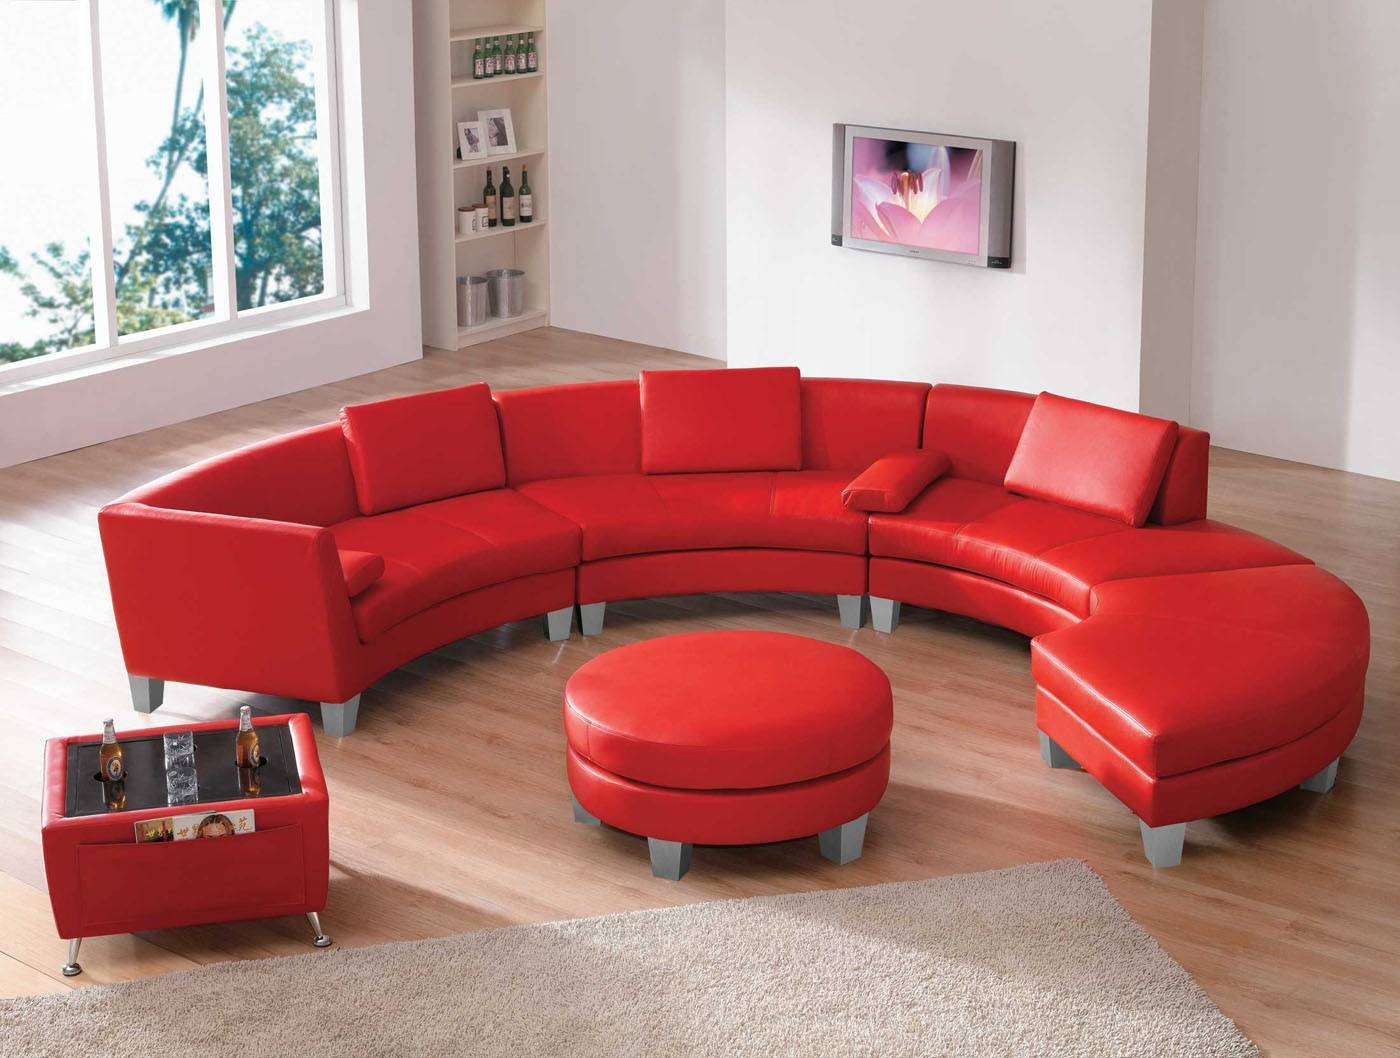 Modern Furniture Chair And Unique Modern Living Room Chairs regarding Red Sofas and Chairs (Image 11 of 30)